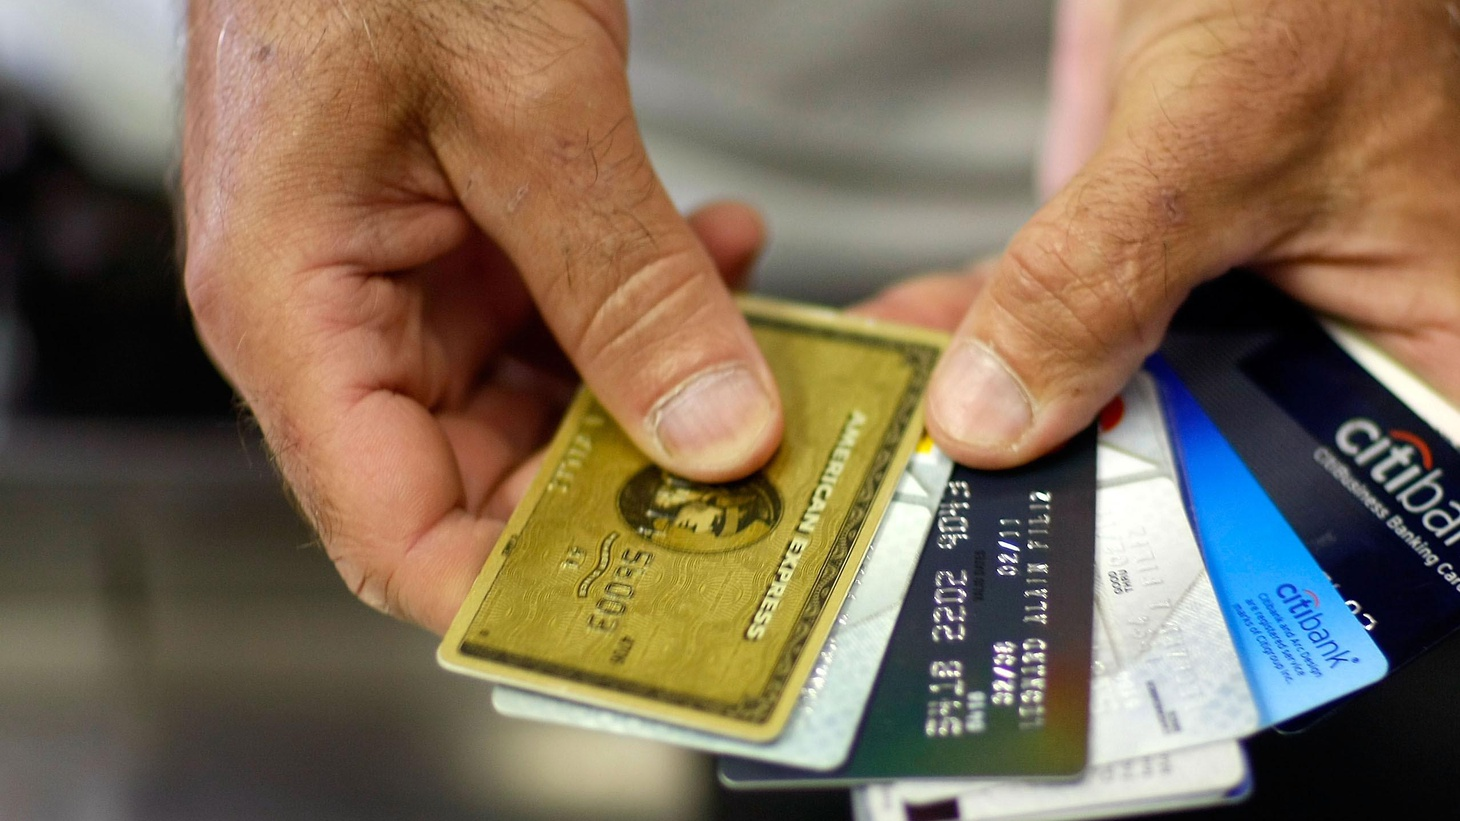 US consumers scaled back in the first years of the Great Recession, but now they're buying again and getting extended credit. Are the laws written to encourage debt? Are Americans born to shop, even when they can't afford to? Also, Tunisia's president flees the country amid mounting protest, and John Paul II on a fast track to sainthood.